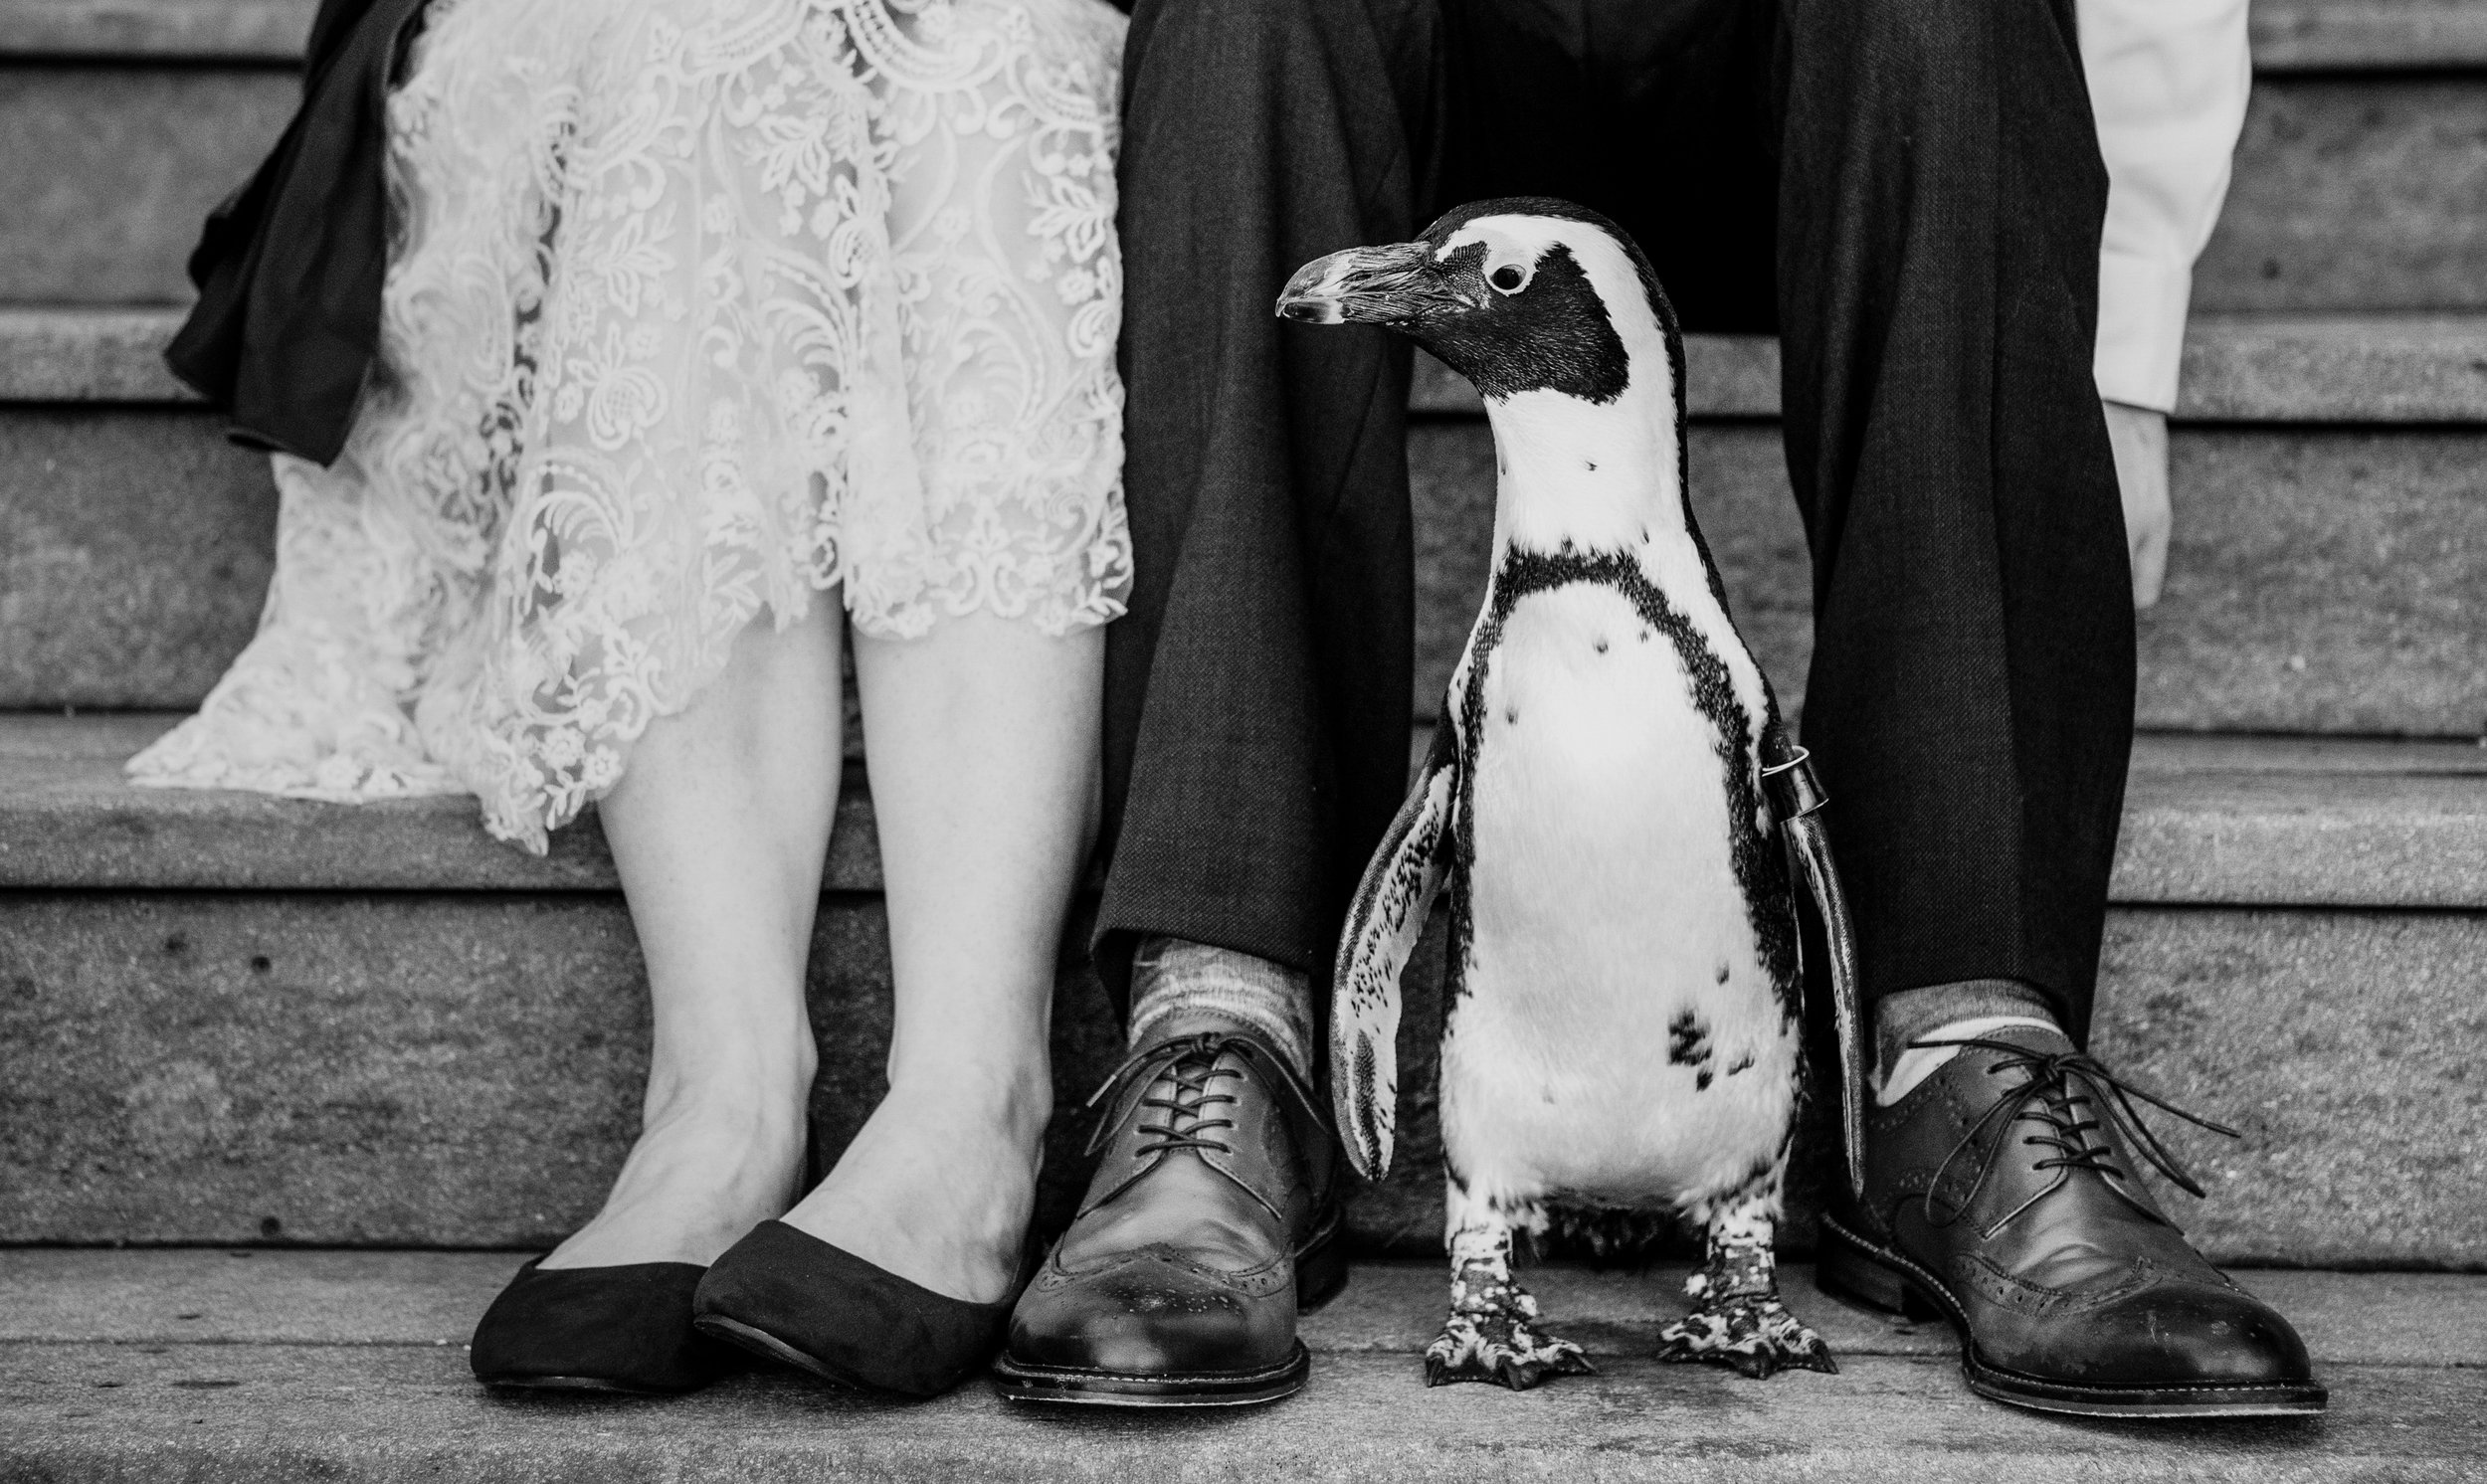 zoo-wedding-penguin-black-and-white.jpg